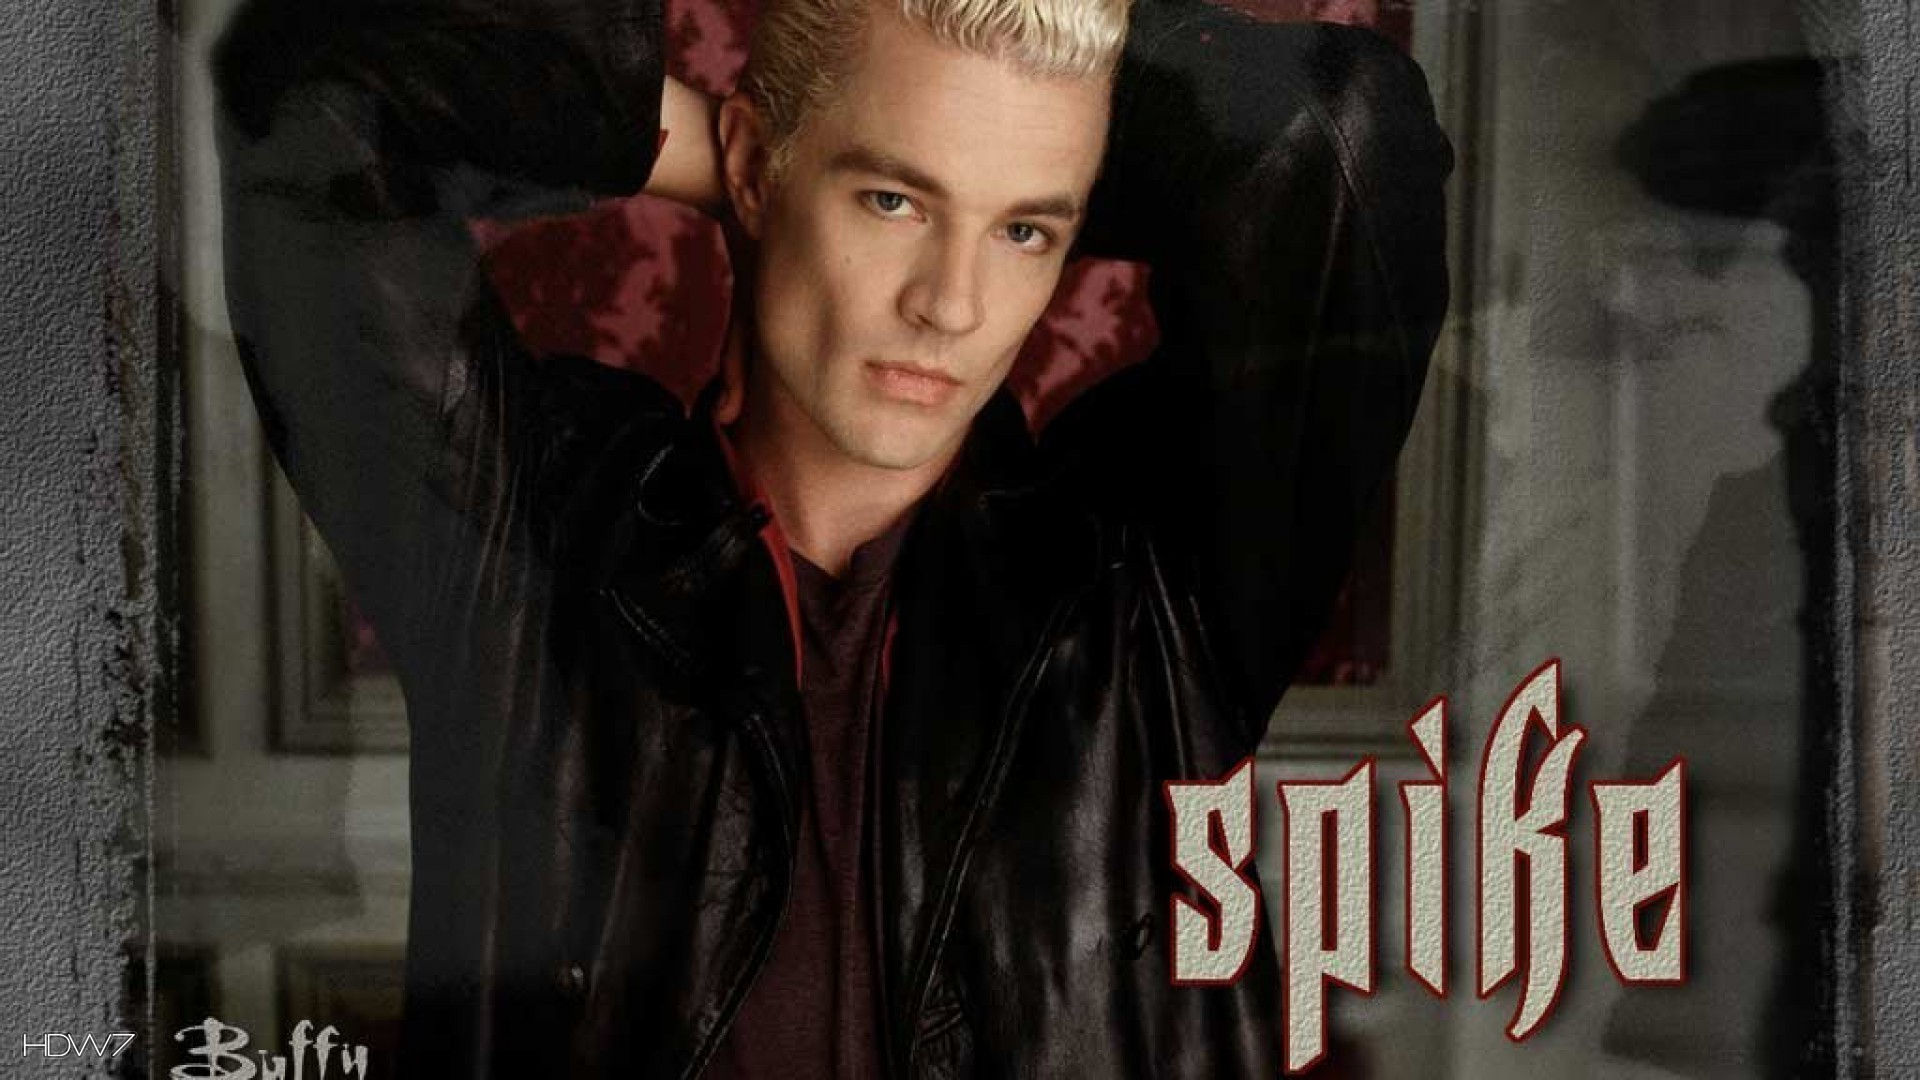 Spike in buffy hd wallpaper gallery 198